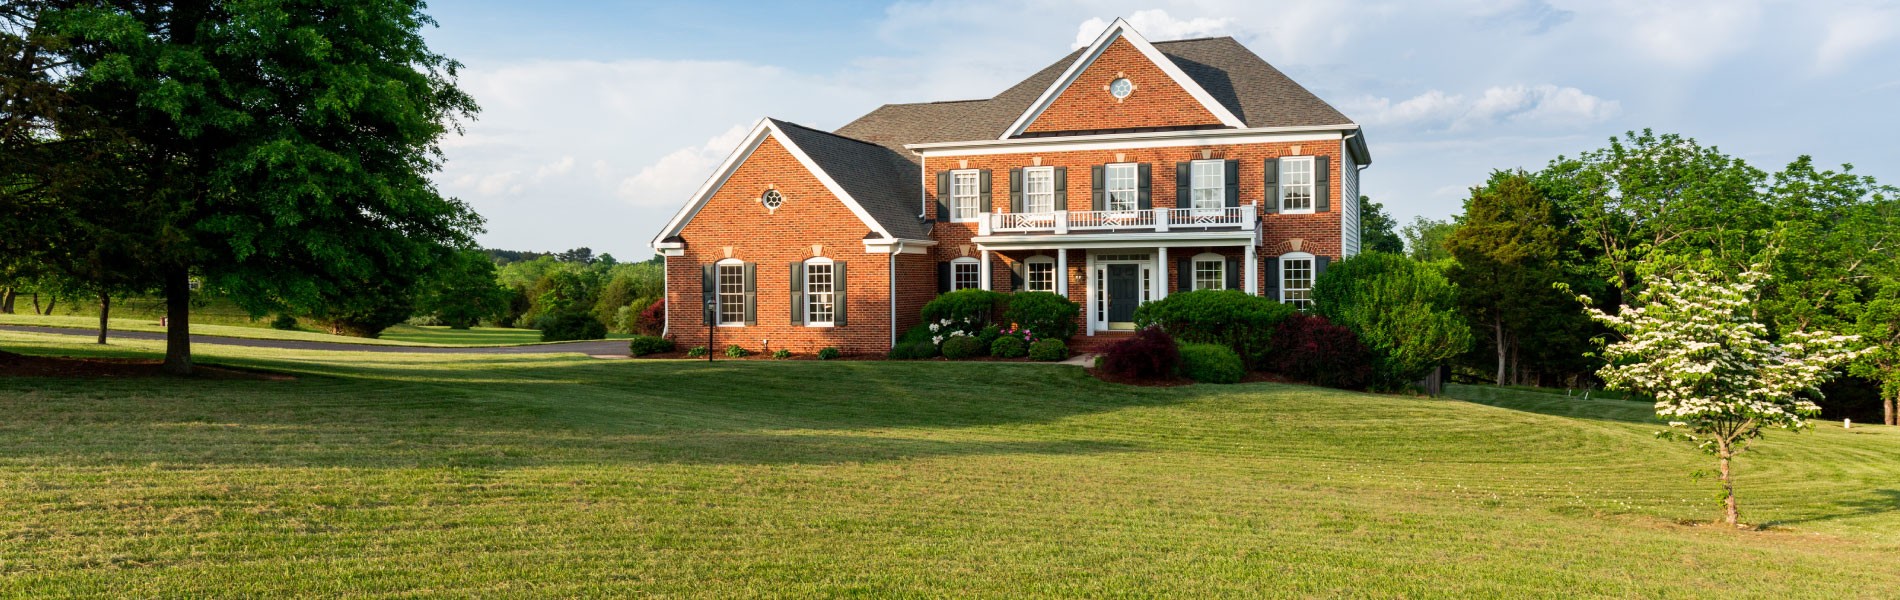 lawn maintenance in northwest Arkansas